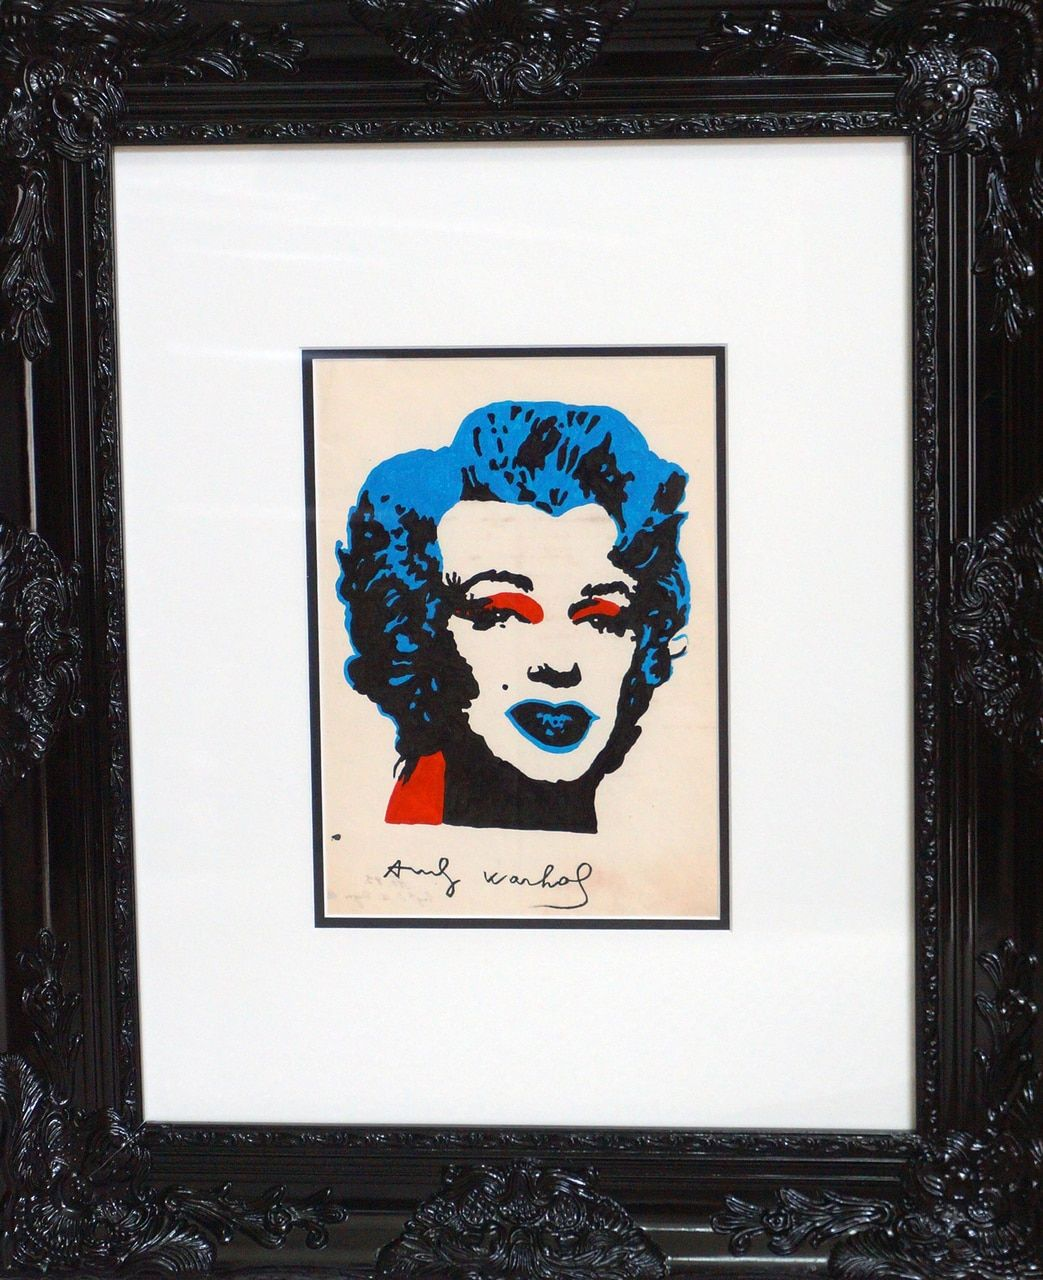 Marilyn Monroe Painting By Andy Warhol Signed Original Framed And